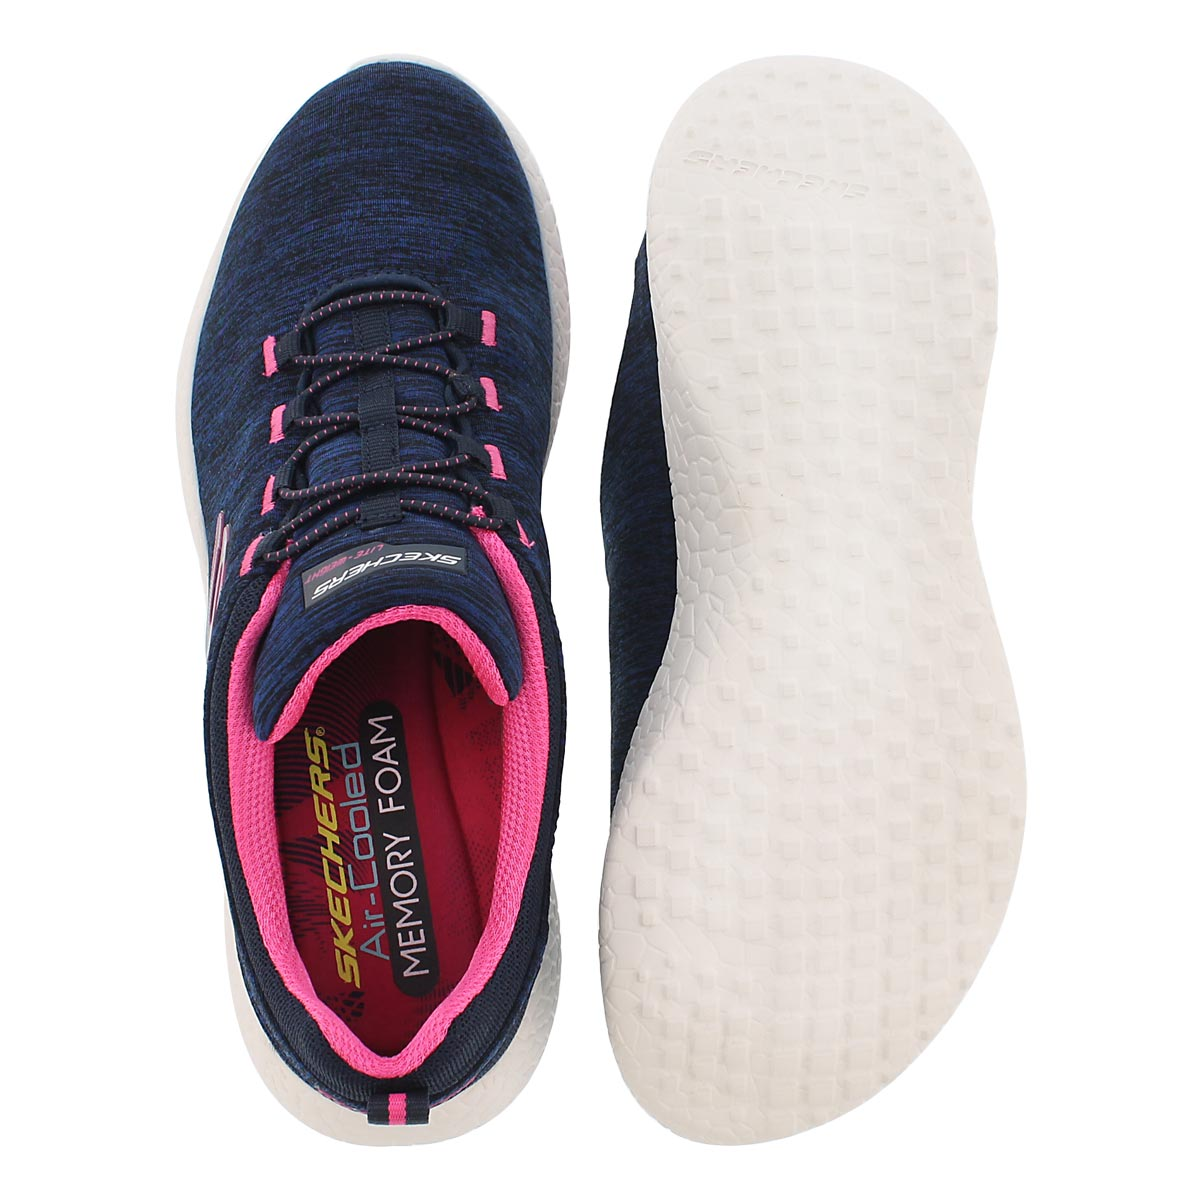 skechers air cooled memory foam slip on womens